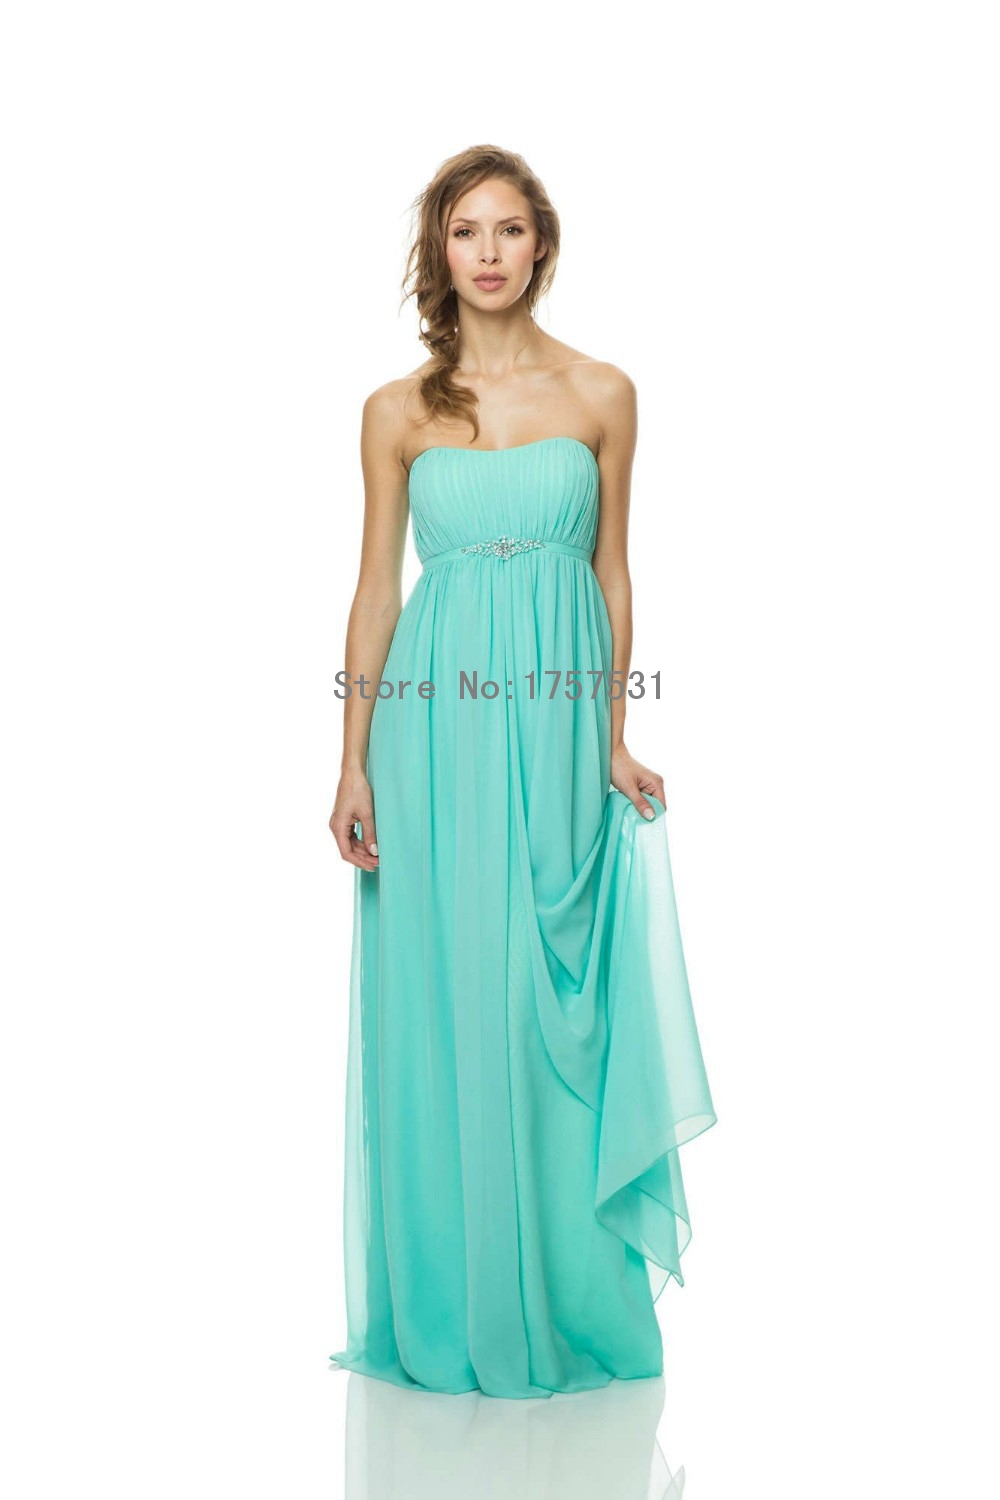 Turquoise Strapless Empire Chiffon Long Plus Size